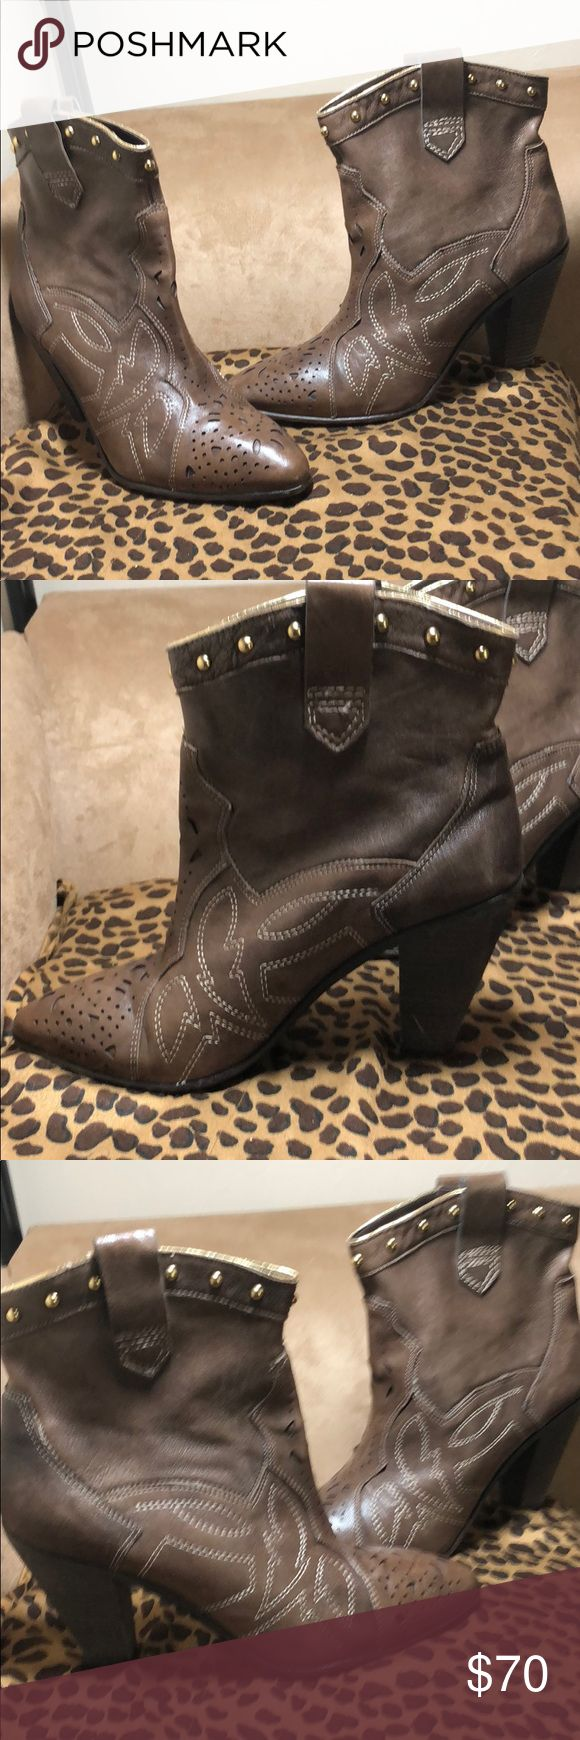 """Hip Brown Carlos Santana boots; gold top 3.5"""" s11 Gotta have Carlos Santana brown leather booties with gold accents at top and 3.5"""" chunky heel worn Once...completely unusual  Work the cowboy and urban thing at the same time...yeah! Sz 11 Carlos Santana Shoes Ankle Boots & Booties"""